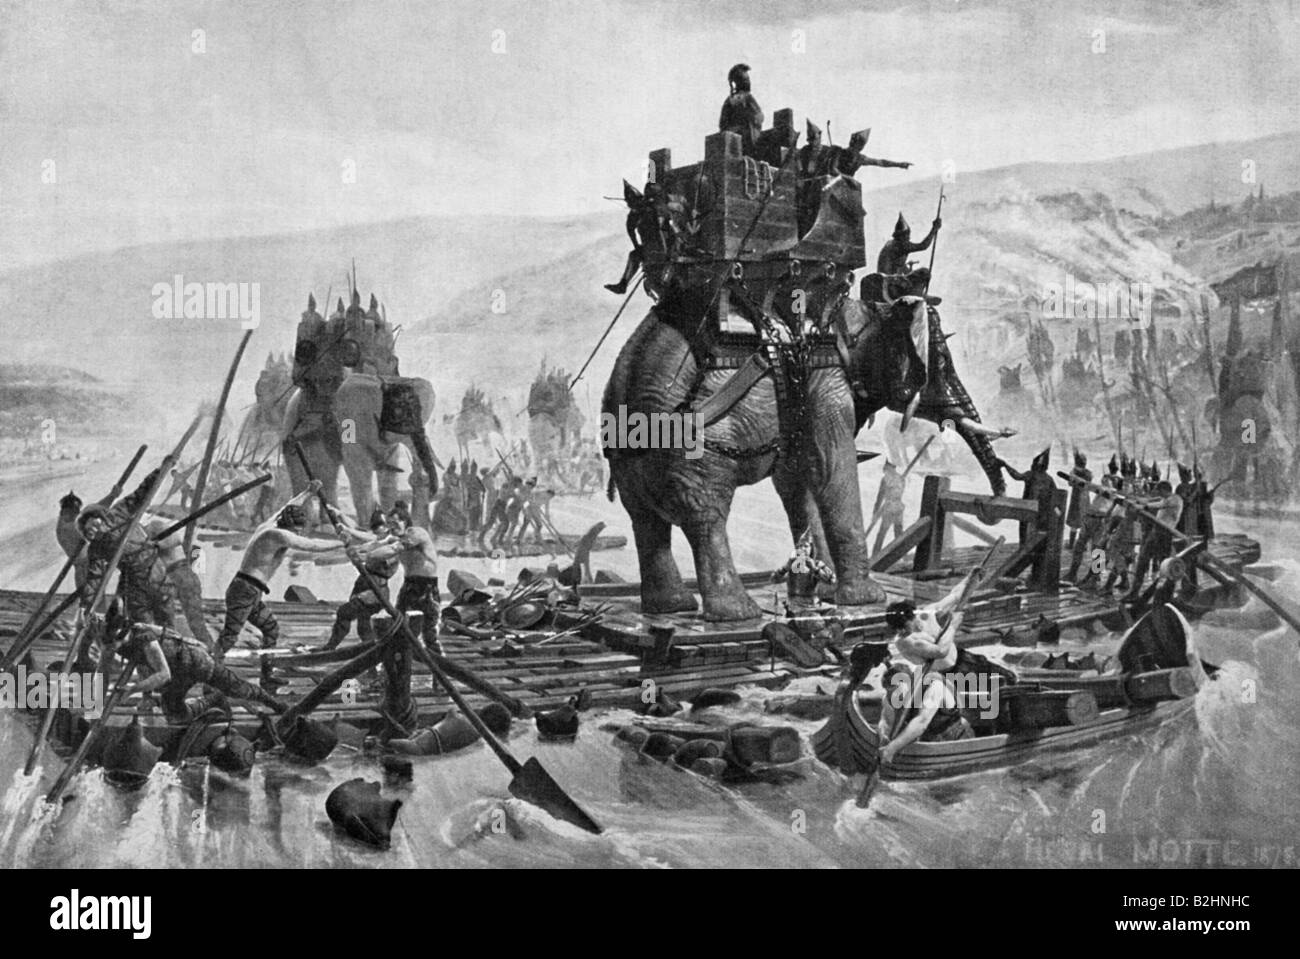 the punic wars Series of three wars fought between rome and carthage from 264 bc to 146 bc, at the time probably the largest wars that had ever taken place.